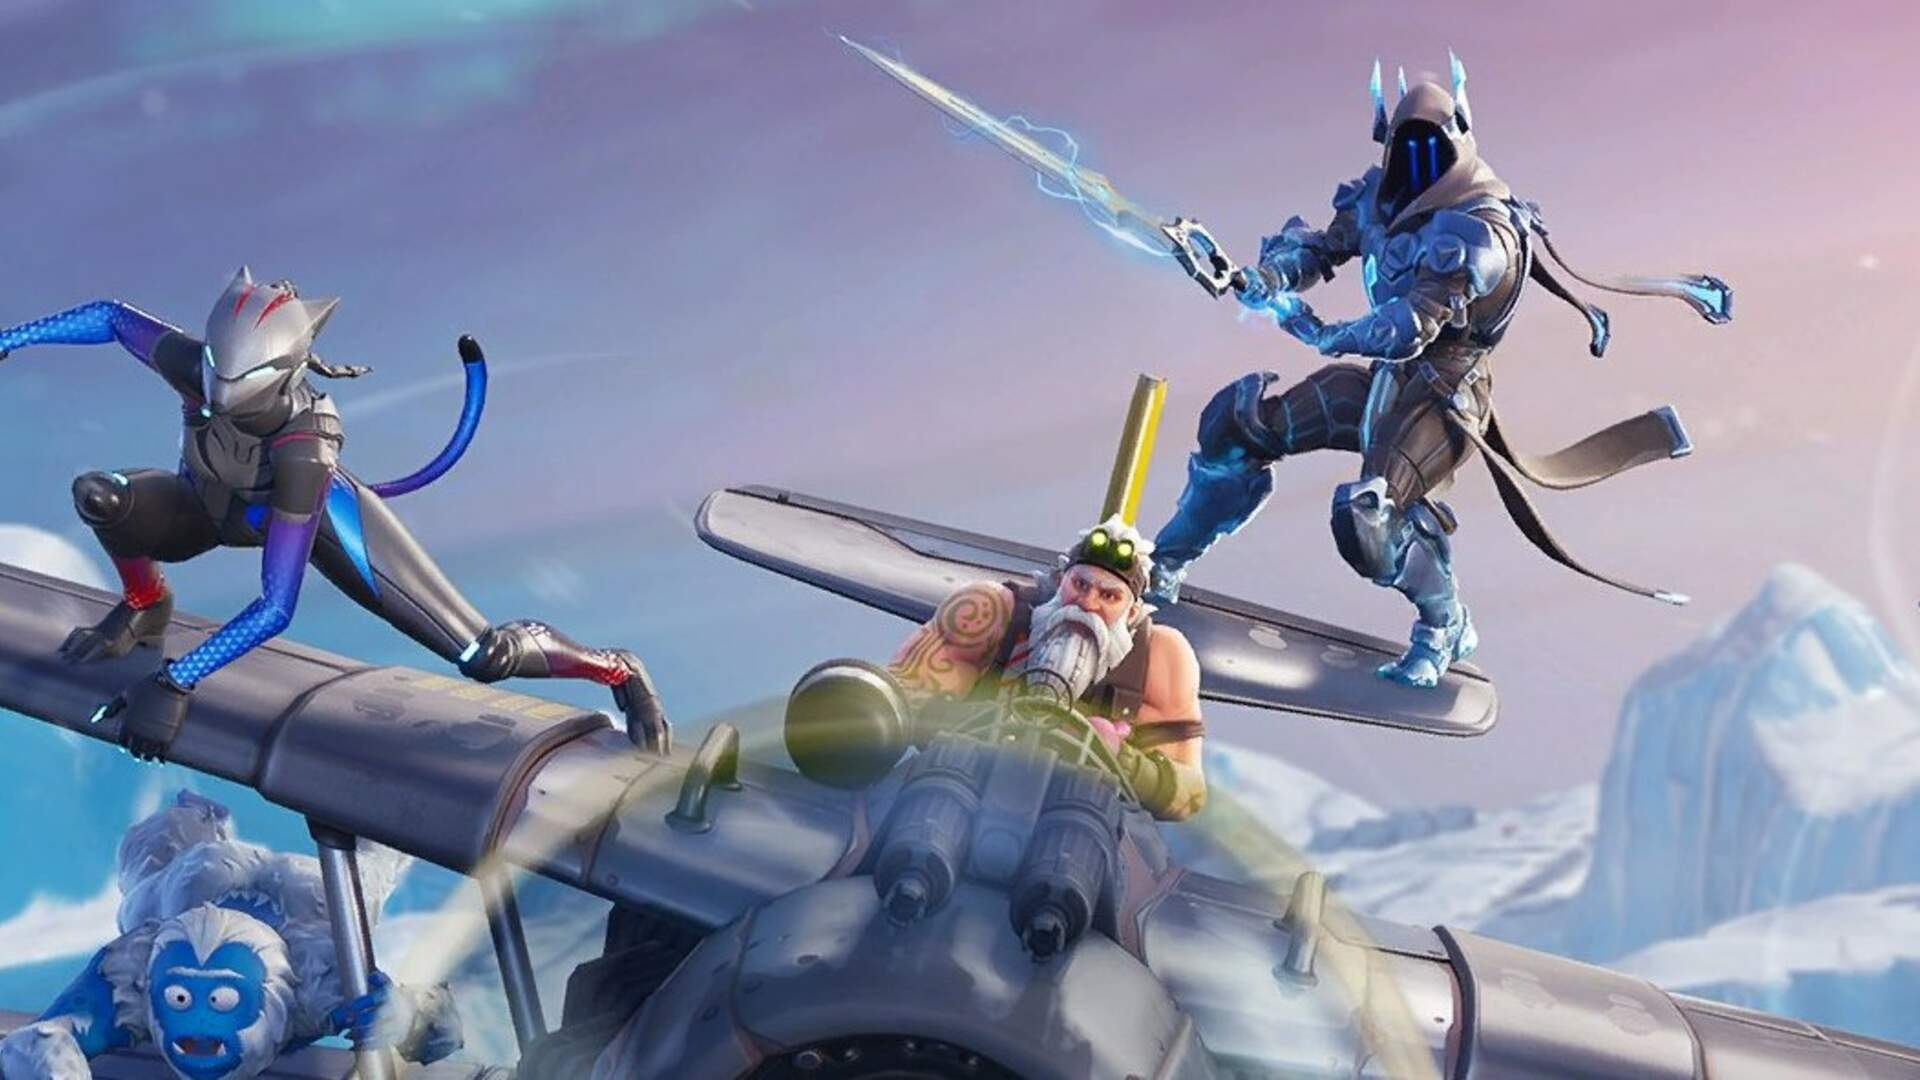 Fortnite Season 7 Guide - Weekly Challenges, Character Skins, and Battle Pass Details